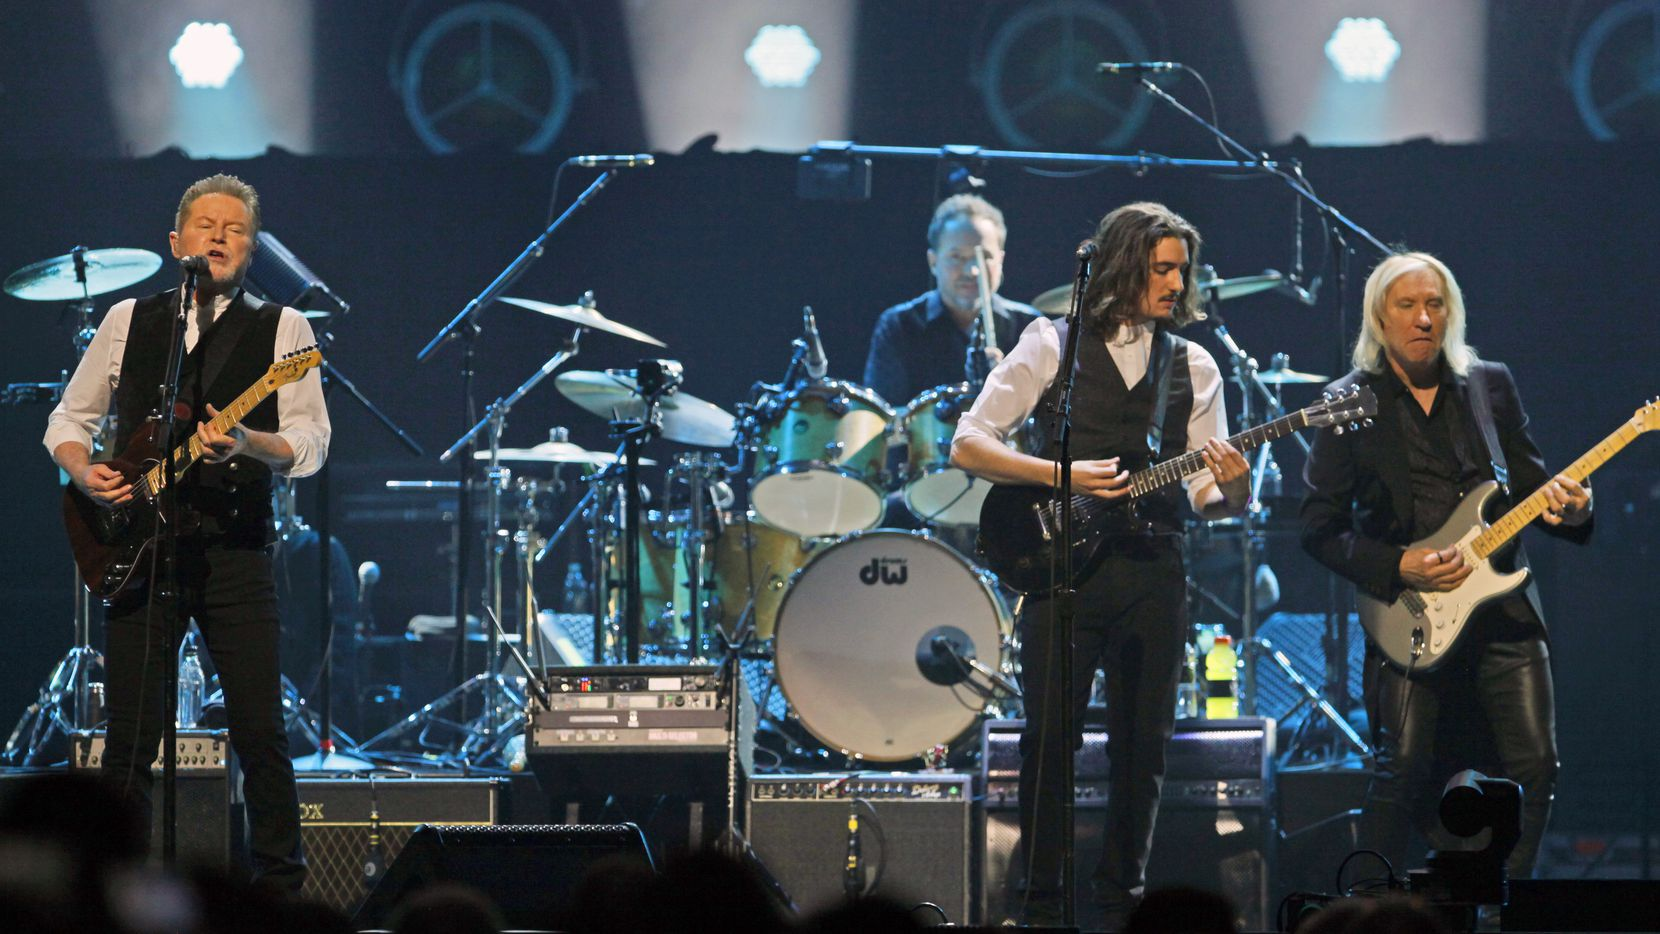 Don Henley, far left, performs with other members of the American rock band the Eagles at the American Airlines Center in Dallas, Saturday night Feb. 29, 2020.